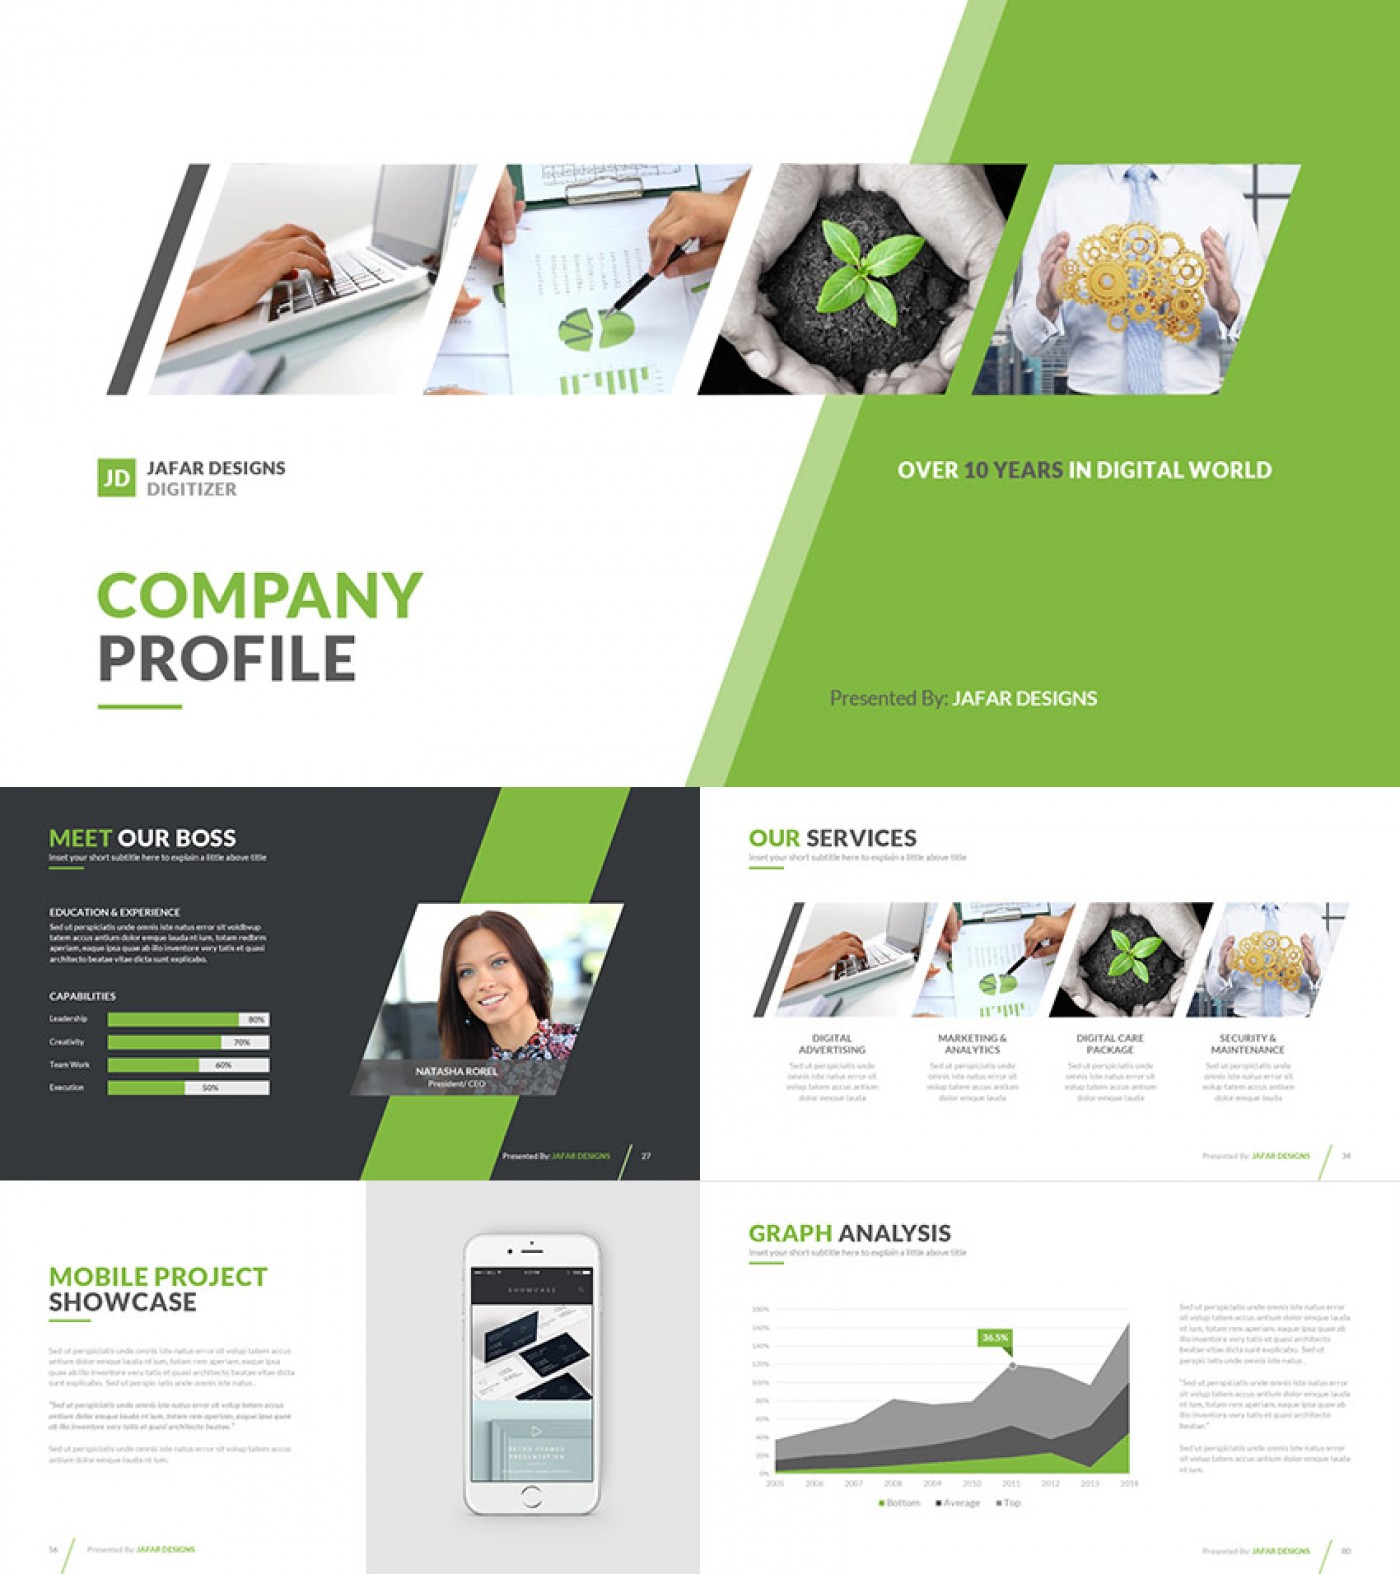 024 Company Profile Health Ppt Template Templates For Research Paper Phenomenal Presentation Powerpoint Format 1400